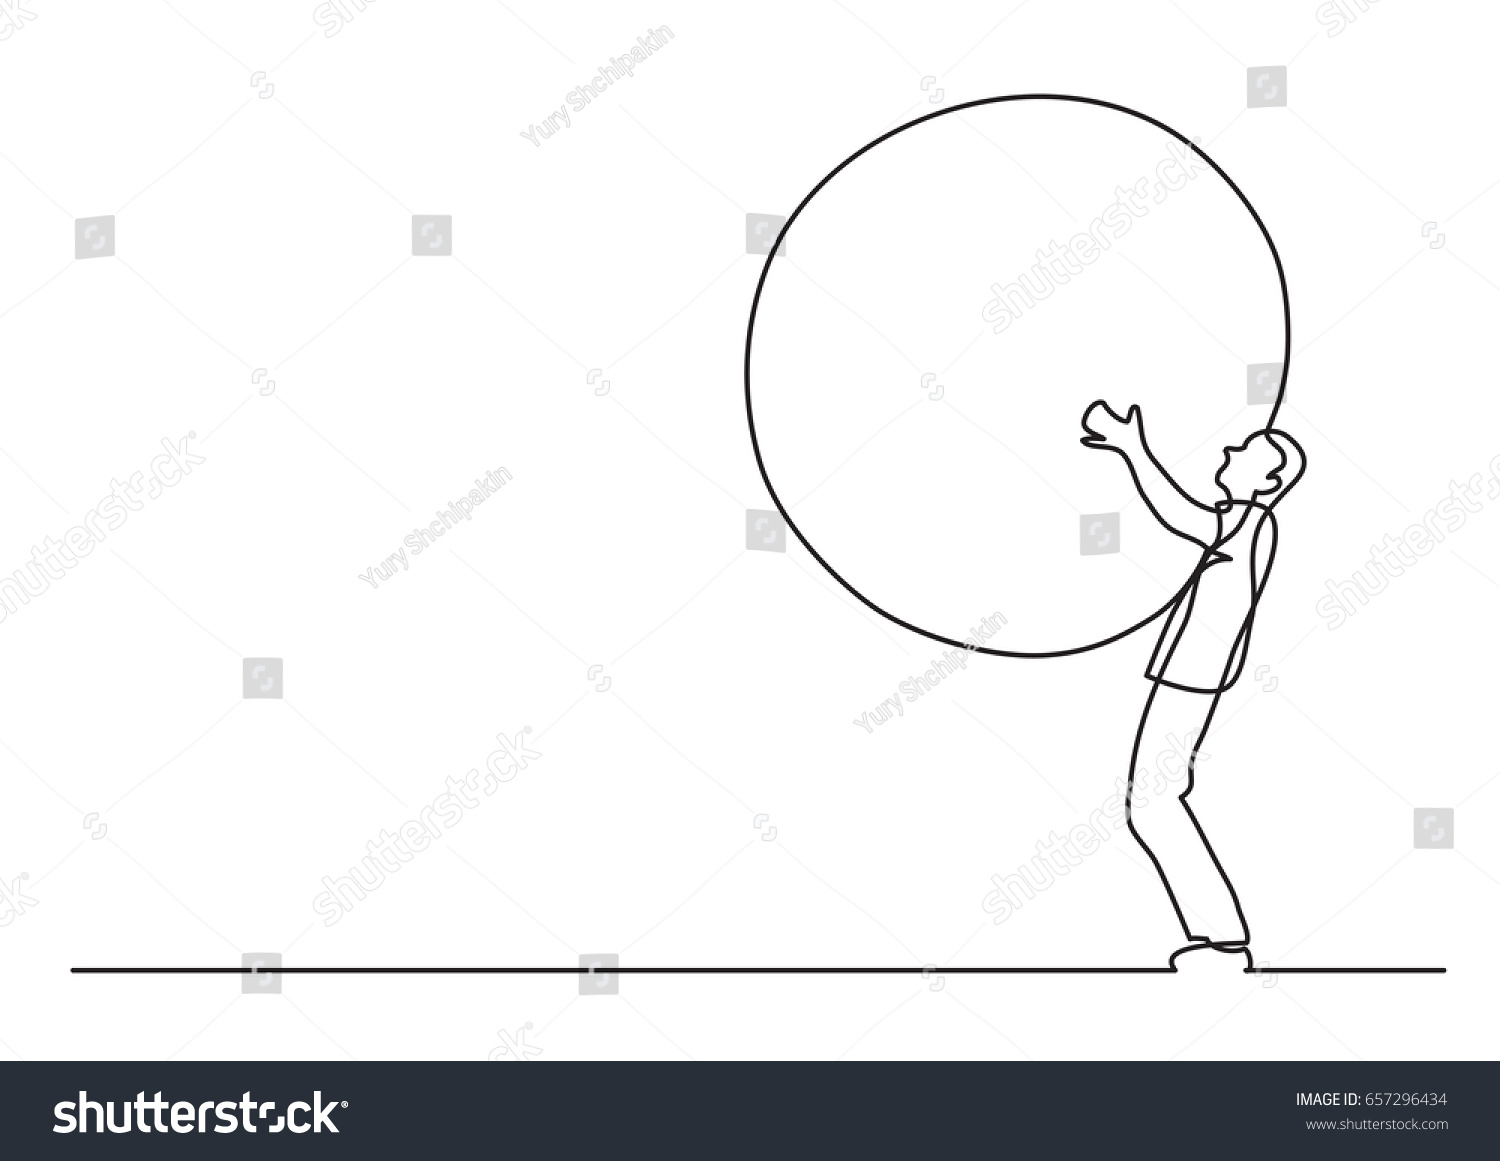 Single Weight Line Art : Man carrying weight single line drawing stock vector